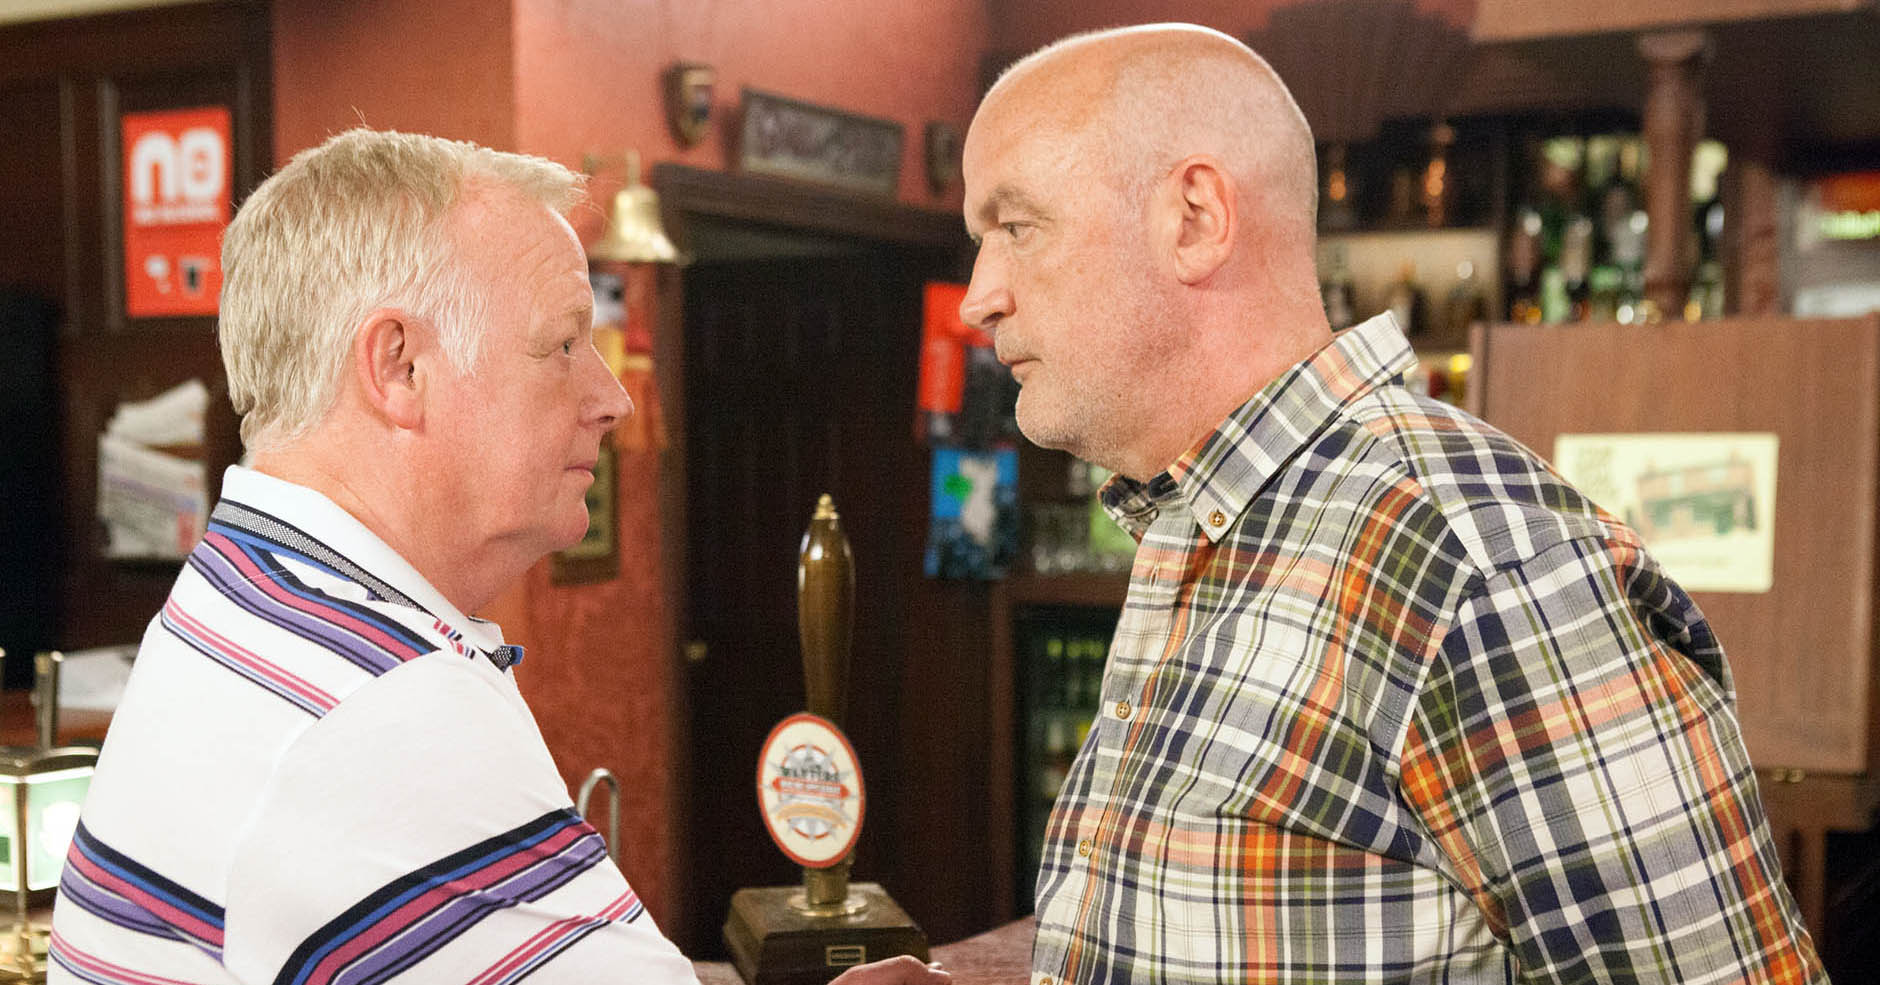 Pat Phelan and Michael Rodwell in Coronation Street